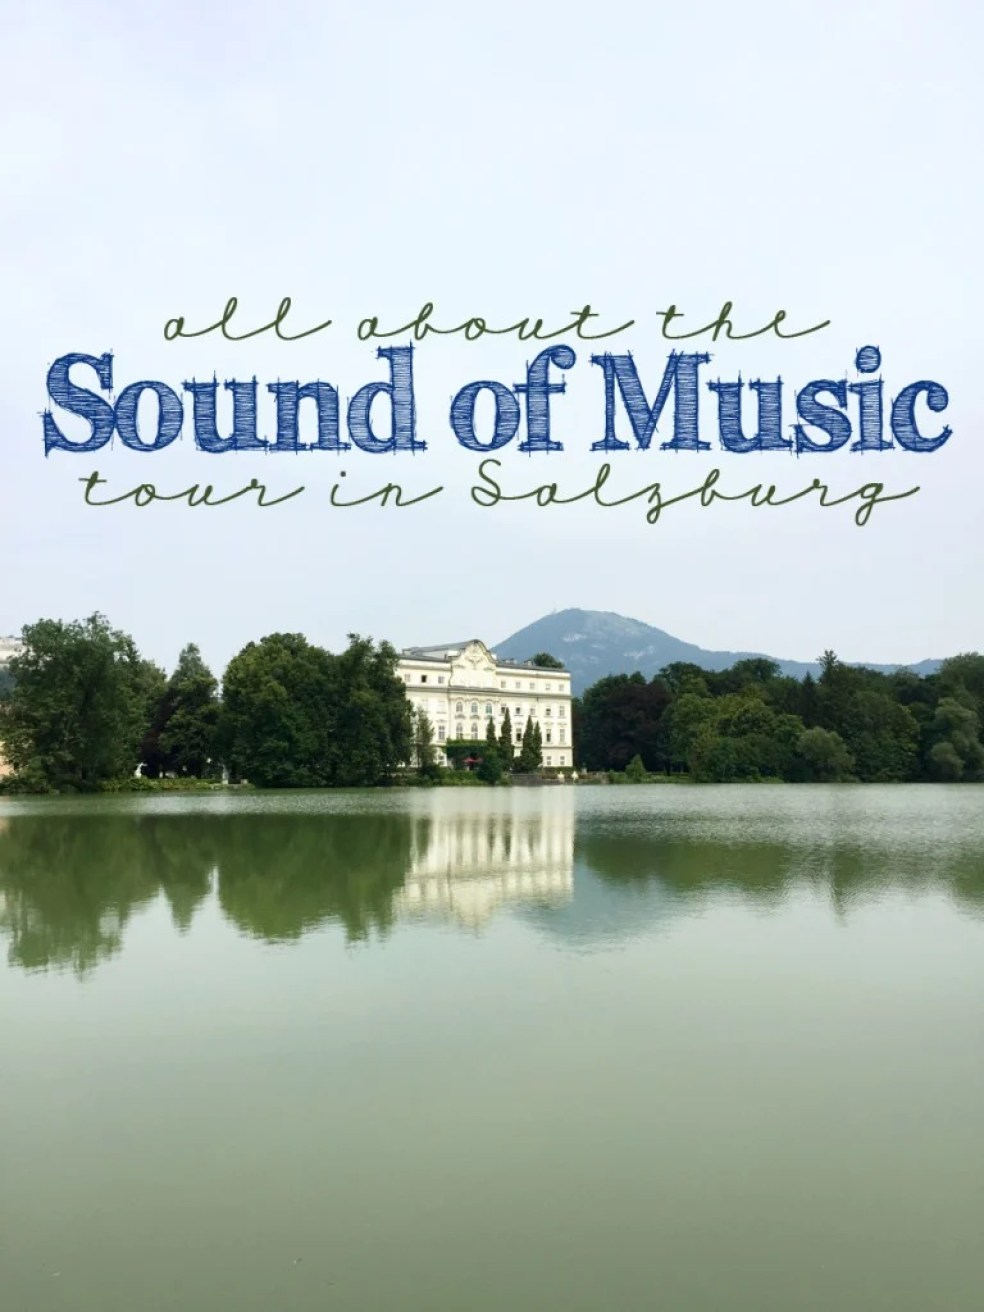 which sound of music tour is the best in Salzburg?